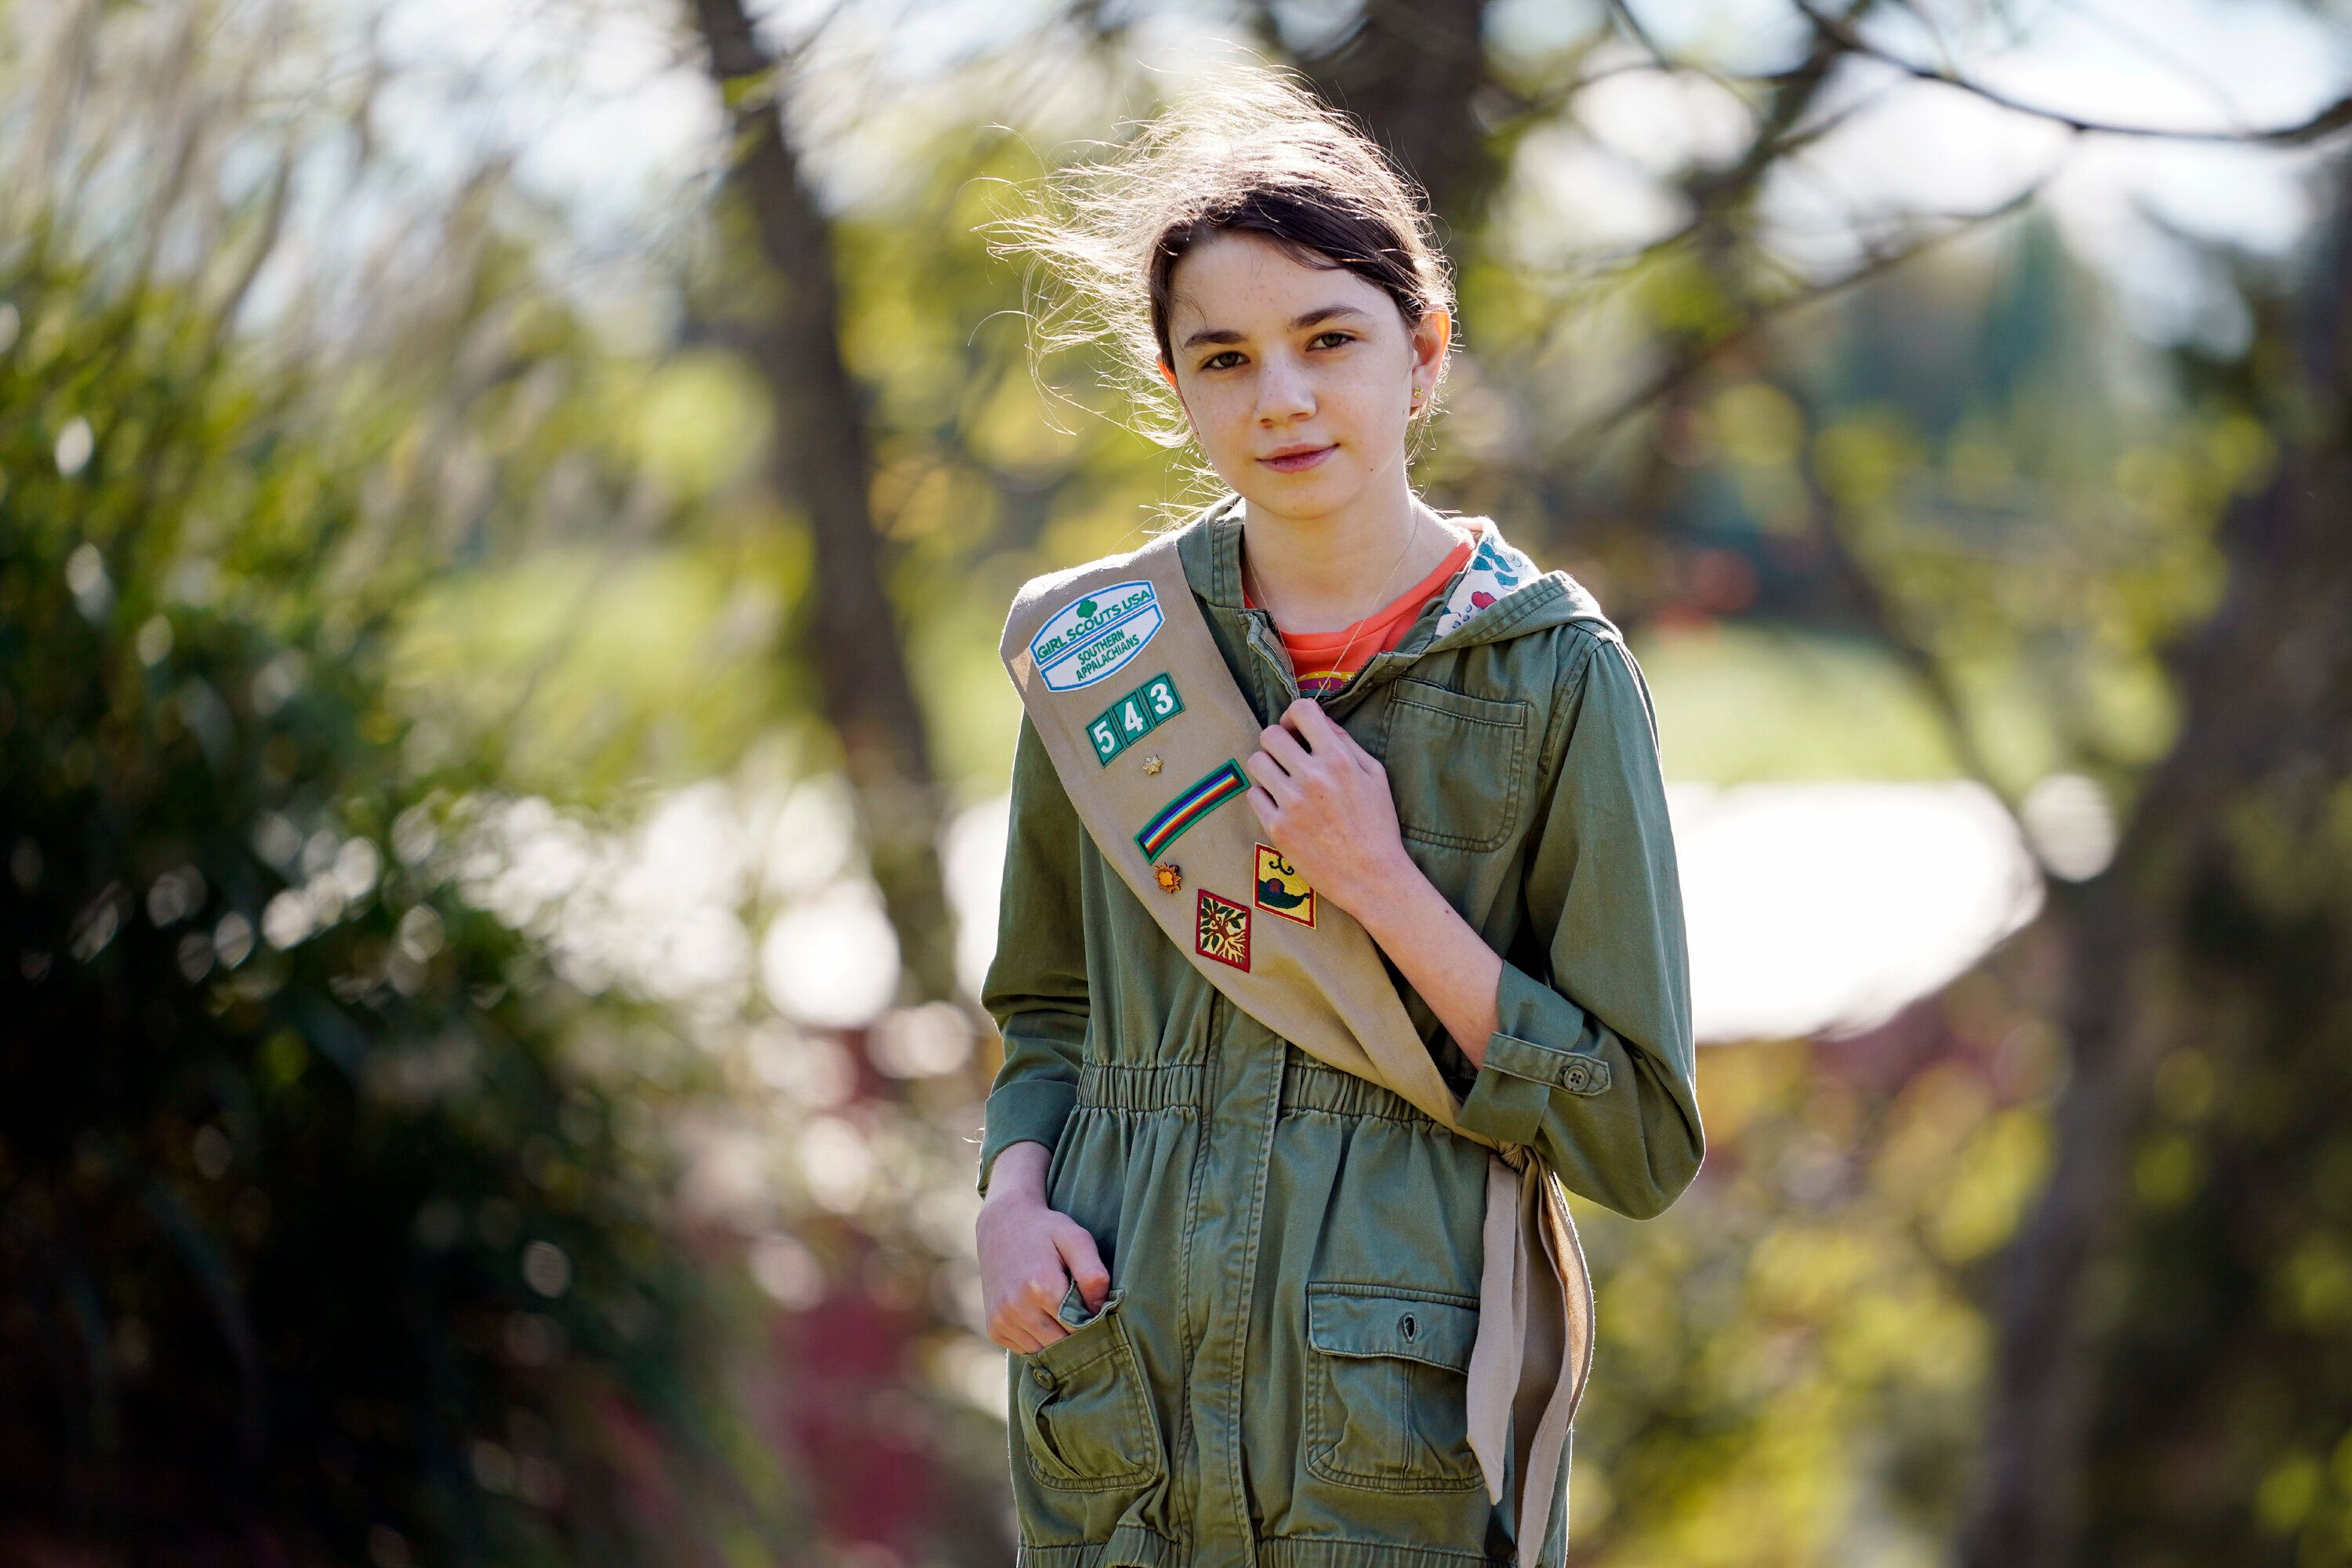 Olivia Chaffin, 14, stands for a portrait with her Girl Scout sash in Jonesborough, Tenn., on Nov. 1. Olivia is asking Girl S